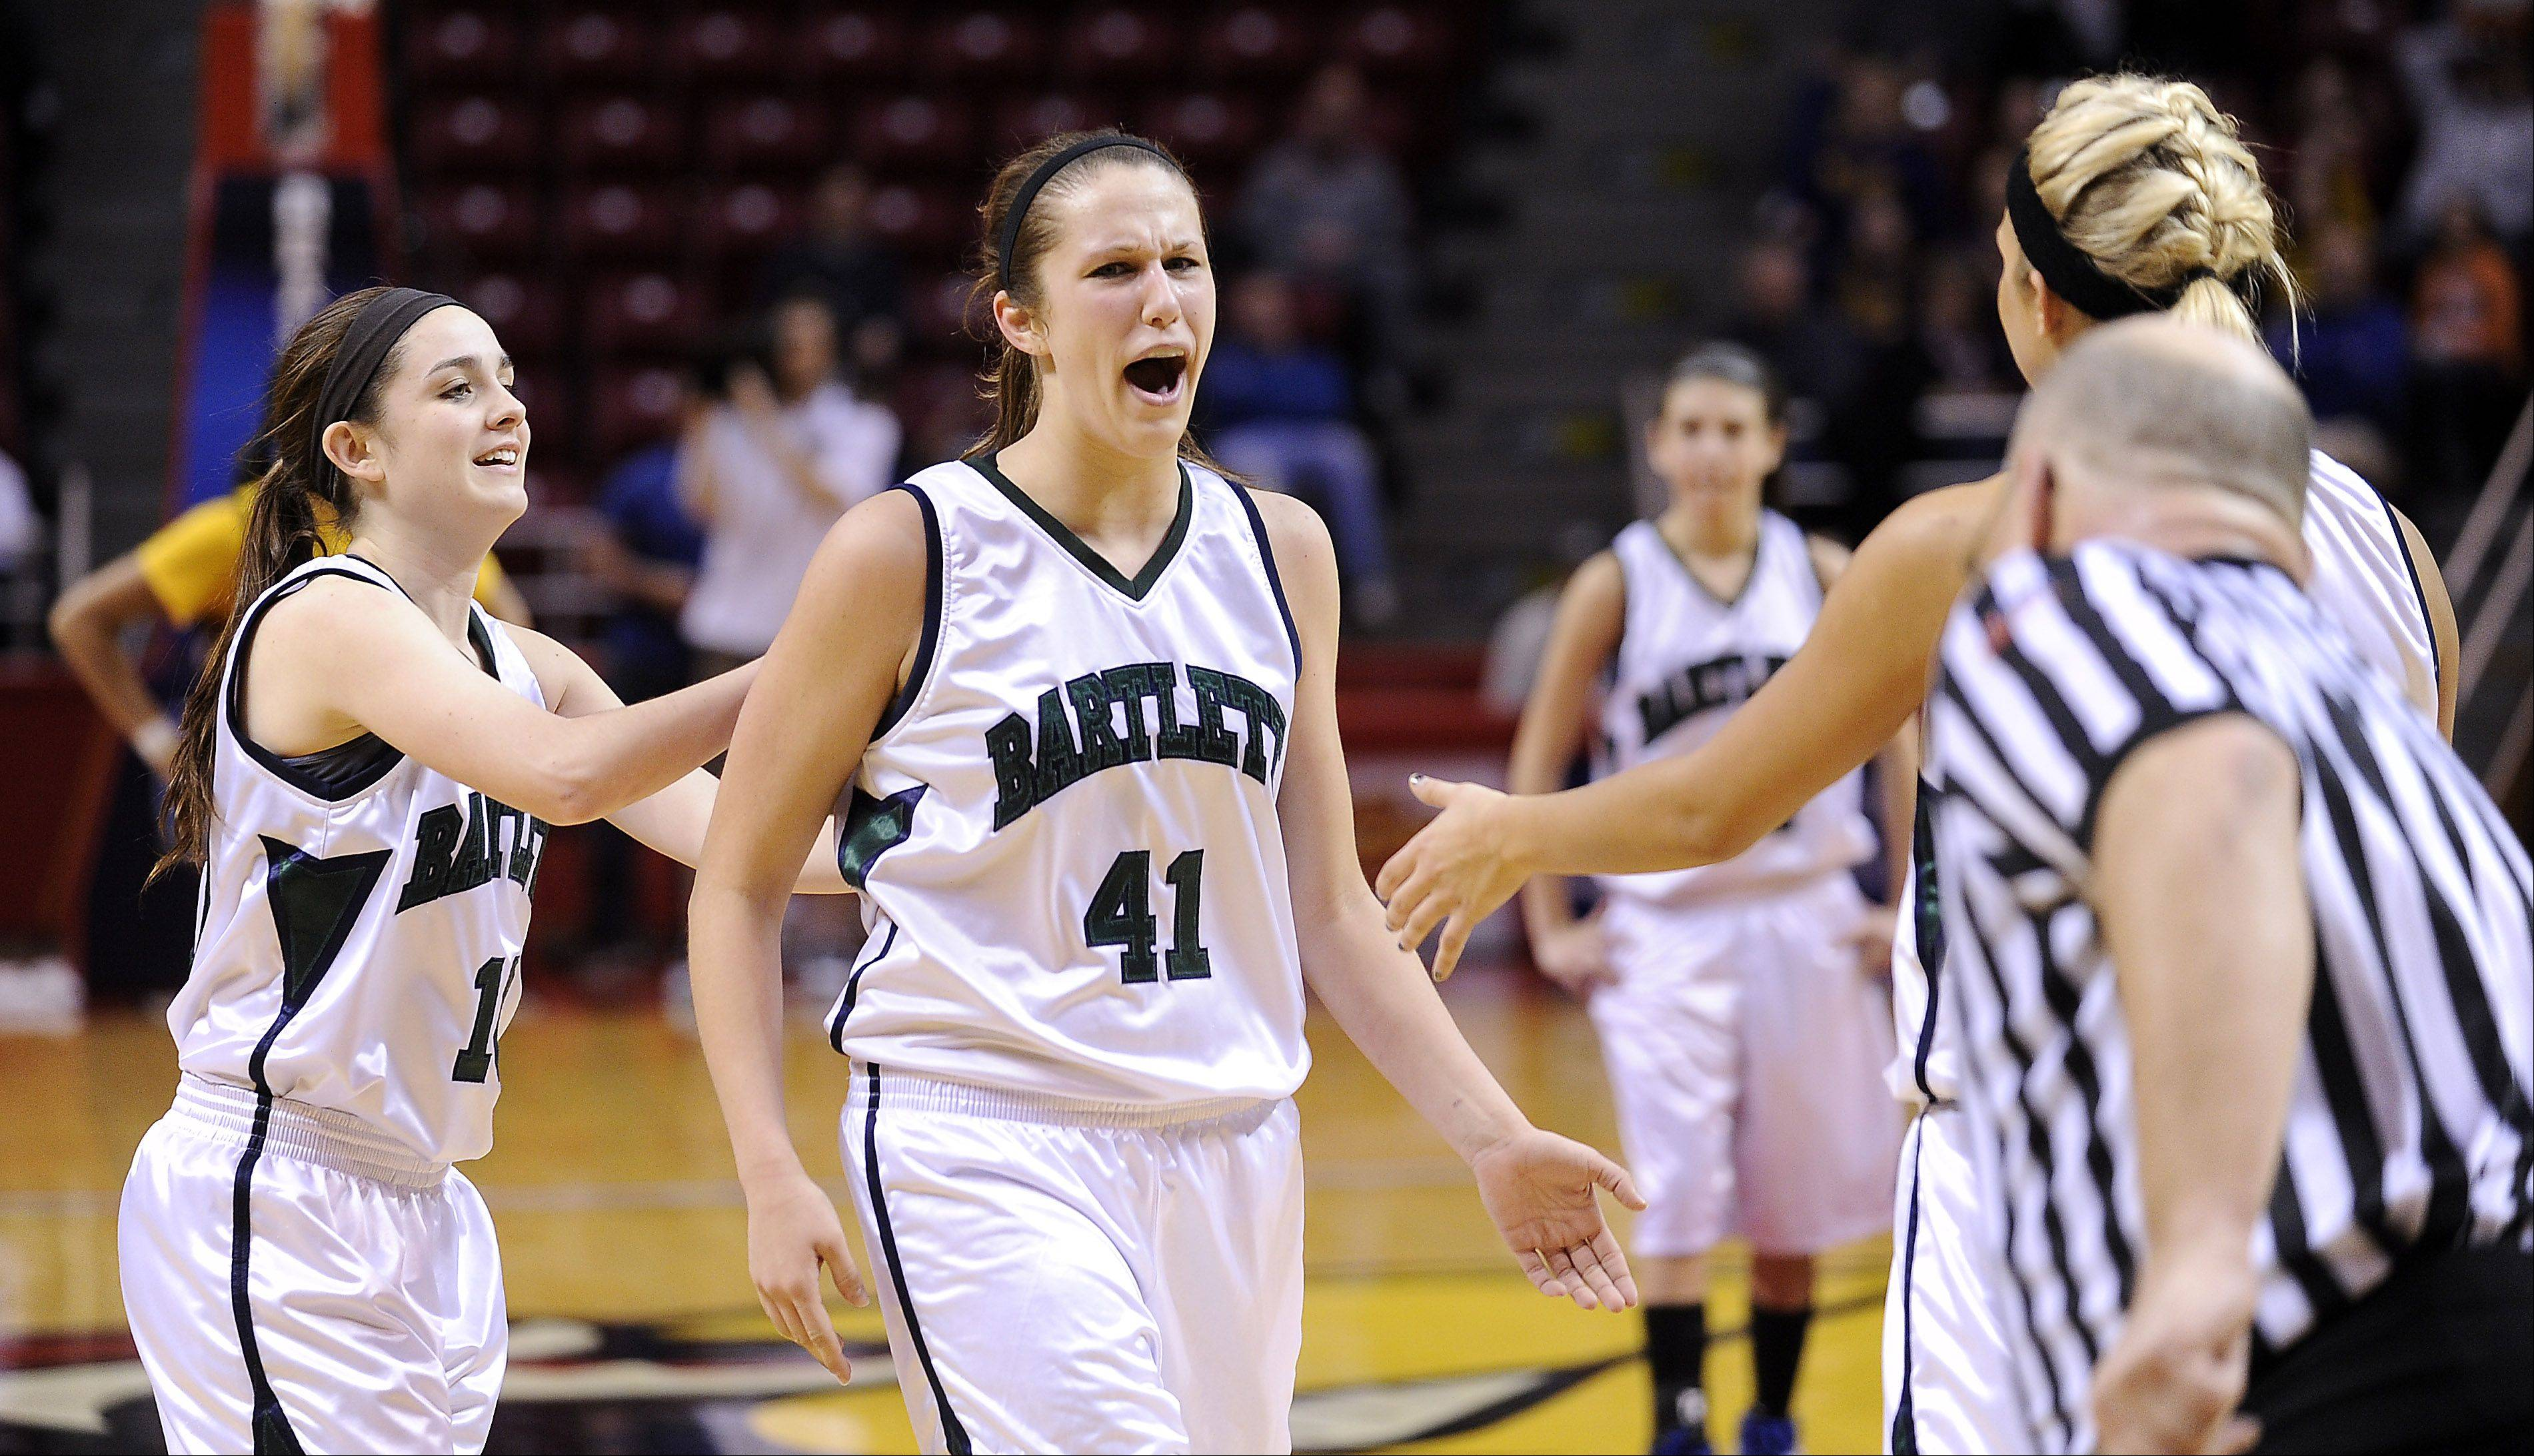 Mark Welsh/mwelsh@dailyherald.comBartlett's Lisa Palmer is pumped after sinking a free throw in overtime to put Bartlett ahead against Loyola Academy in the Class 4A third-place game Saturday at Redbird Arena.